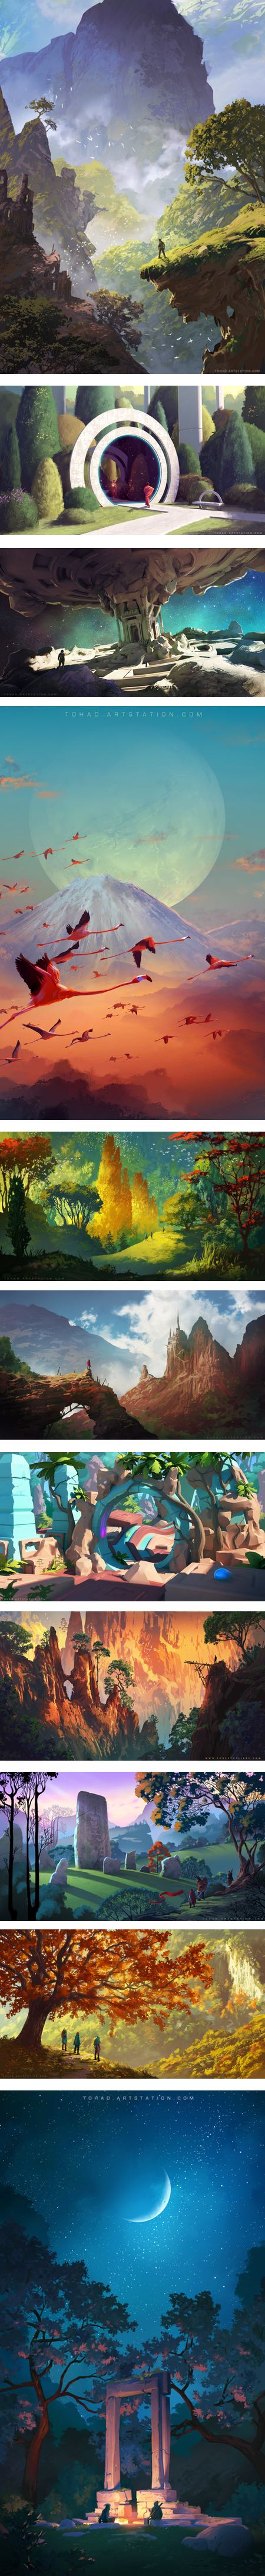 Sylvain Sarrailh, concept art, environments, illustration